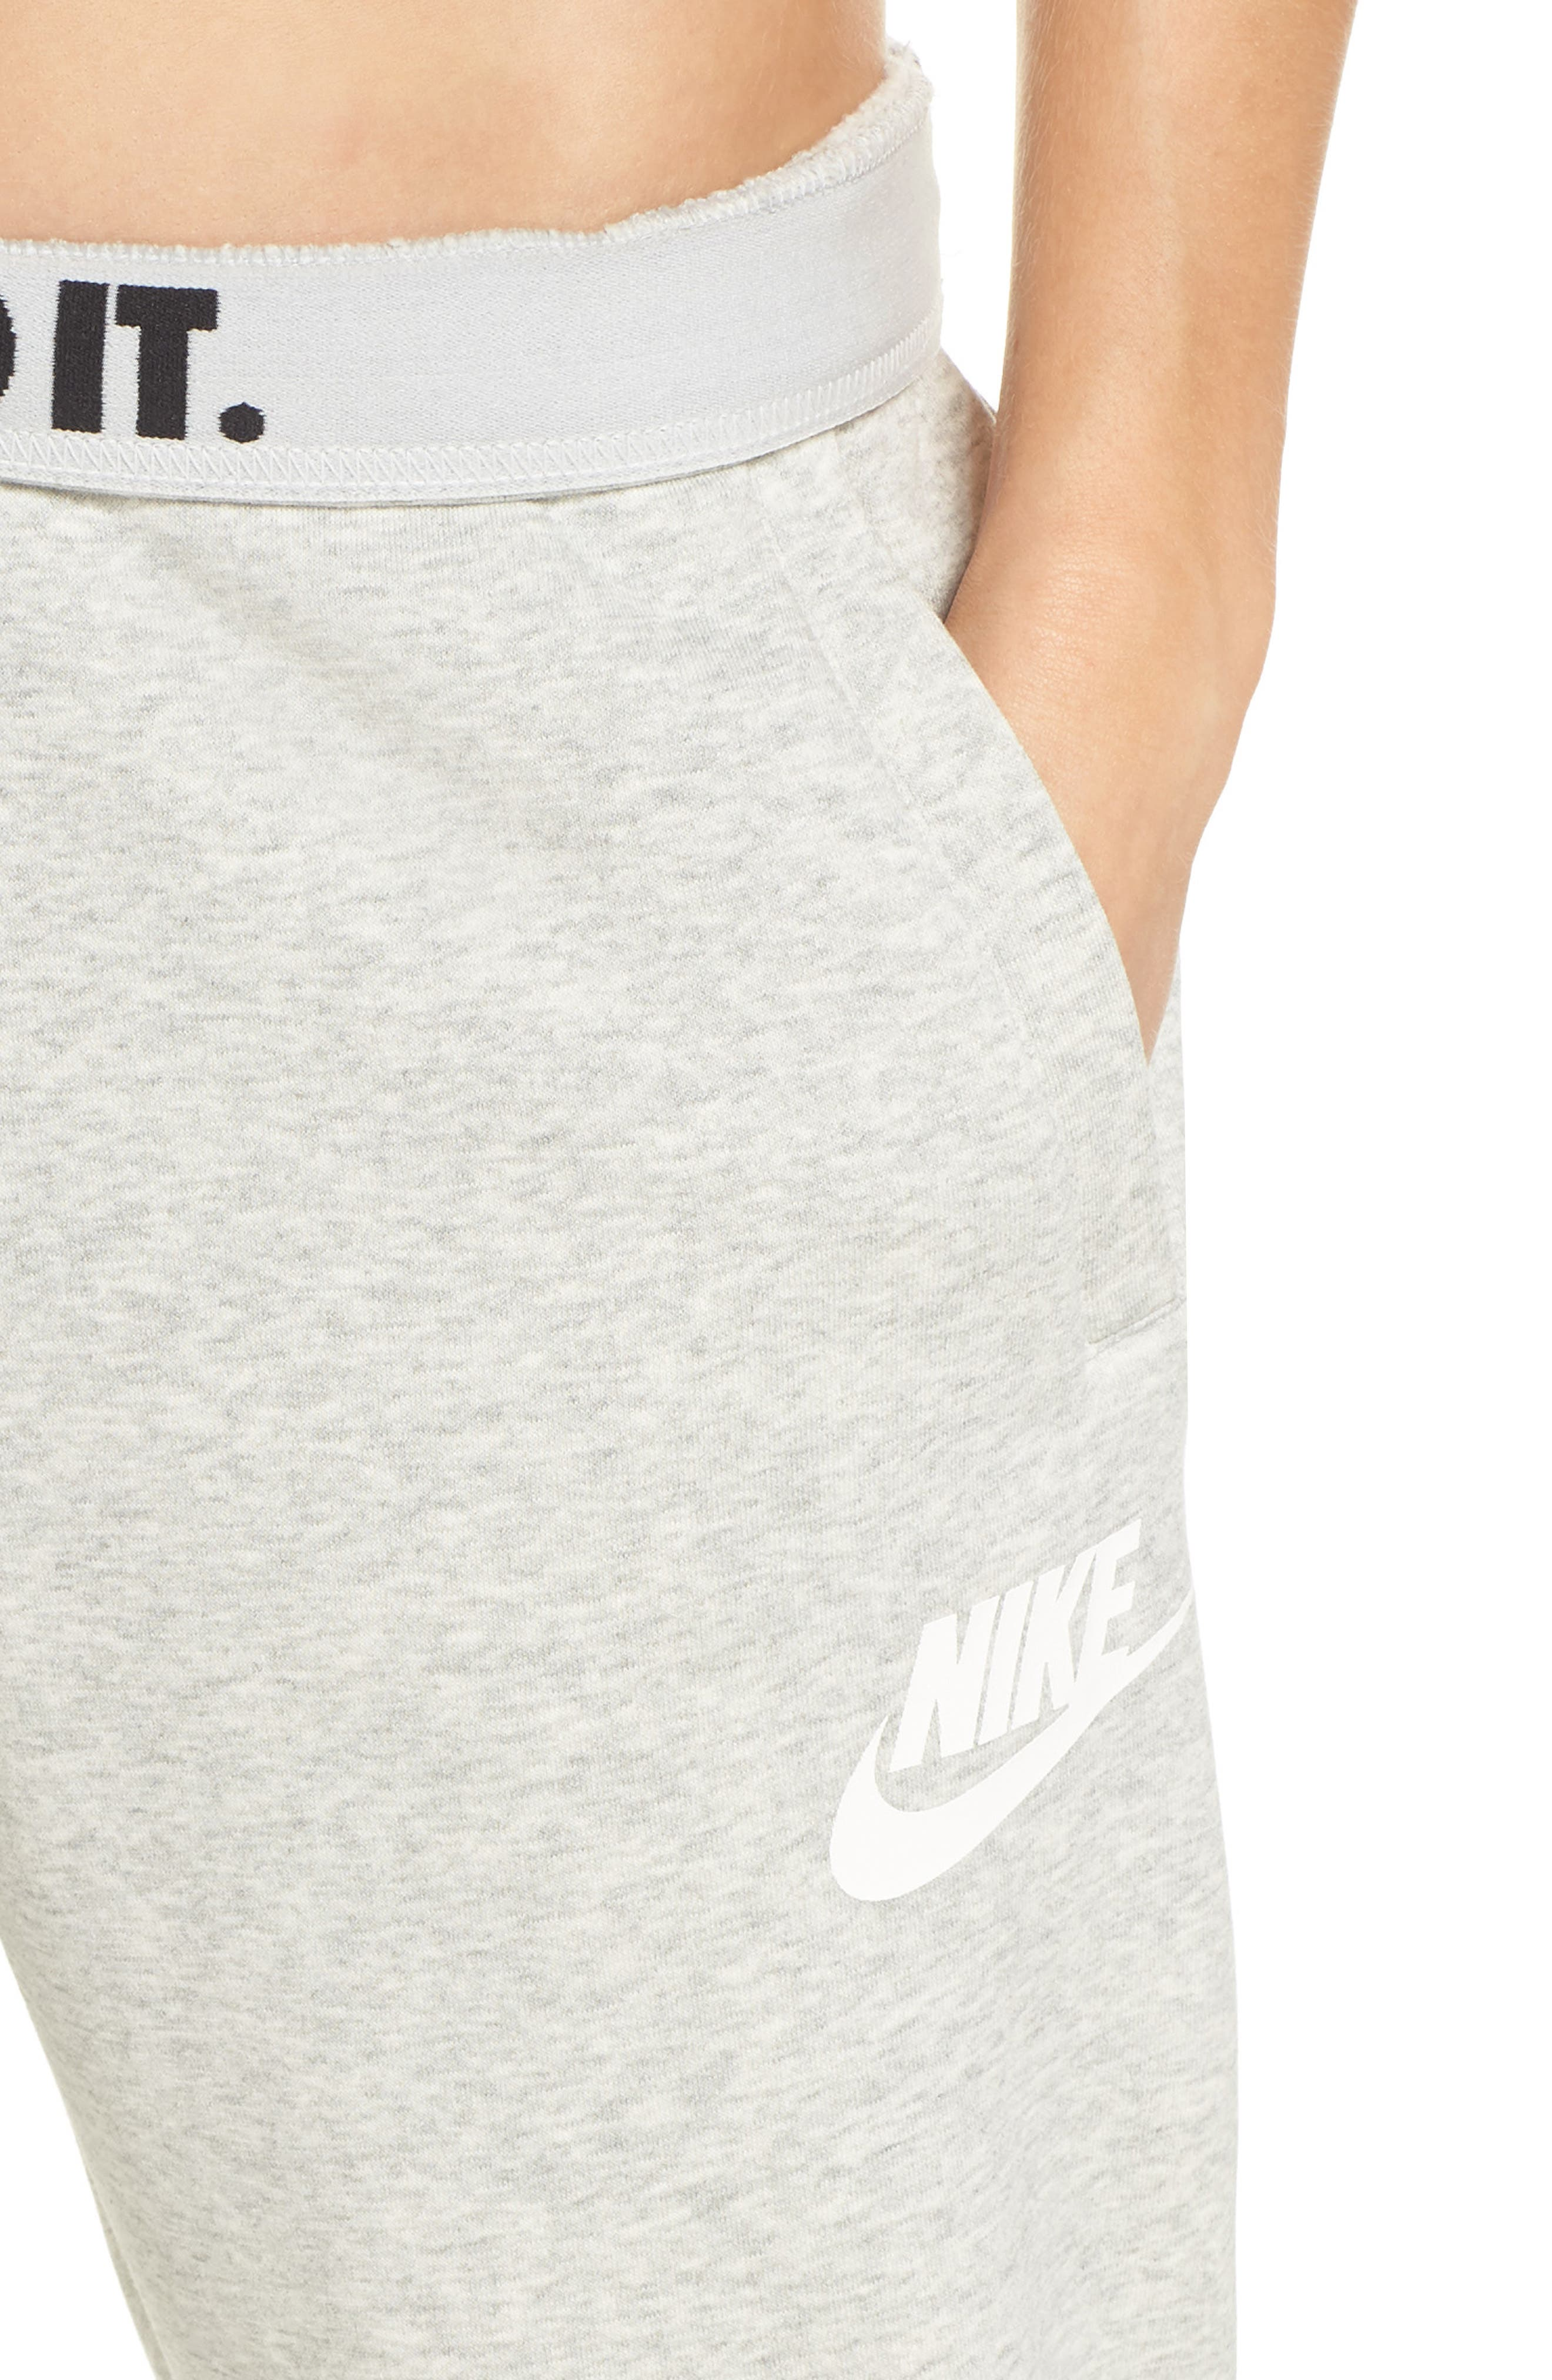 NIKE, Sportswear Rally Jogger Pants, Alternate thumbnail 5, color, GREY HEATHER/ PALE GREY/ WHITE